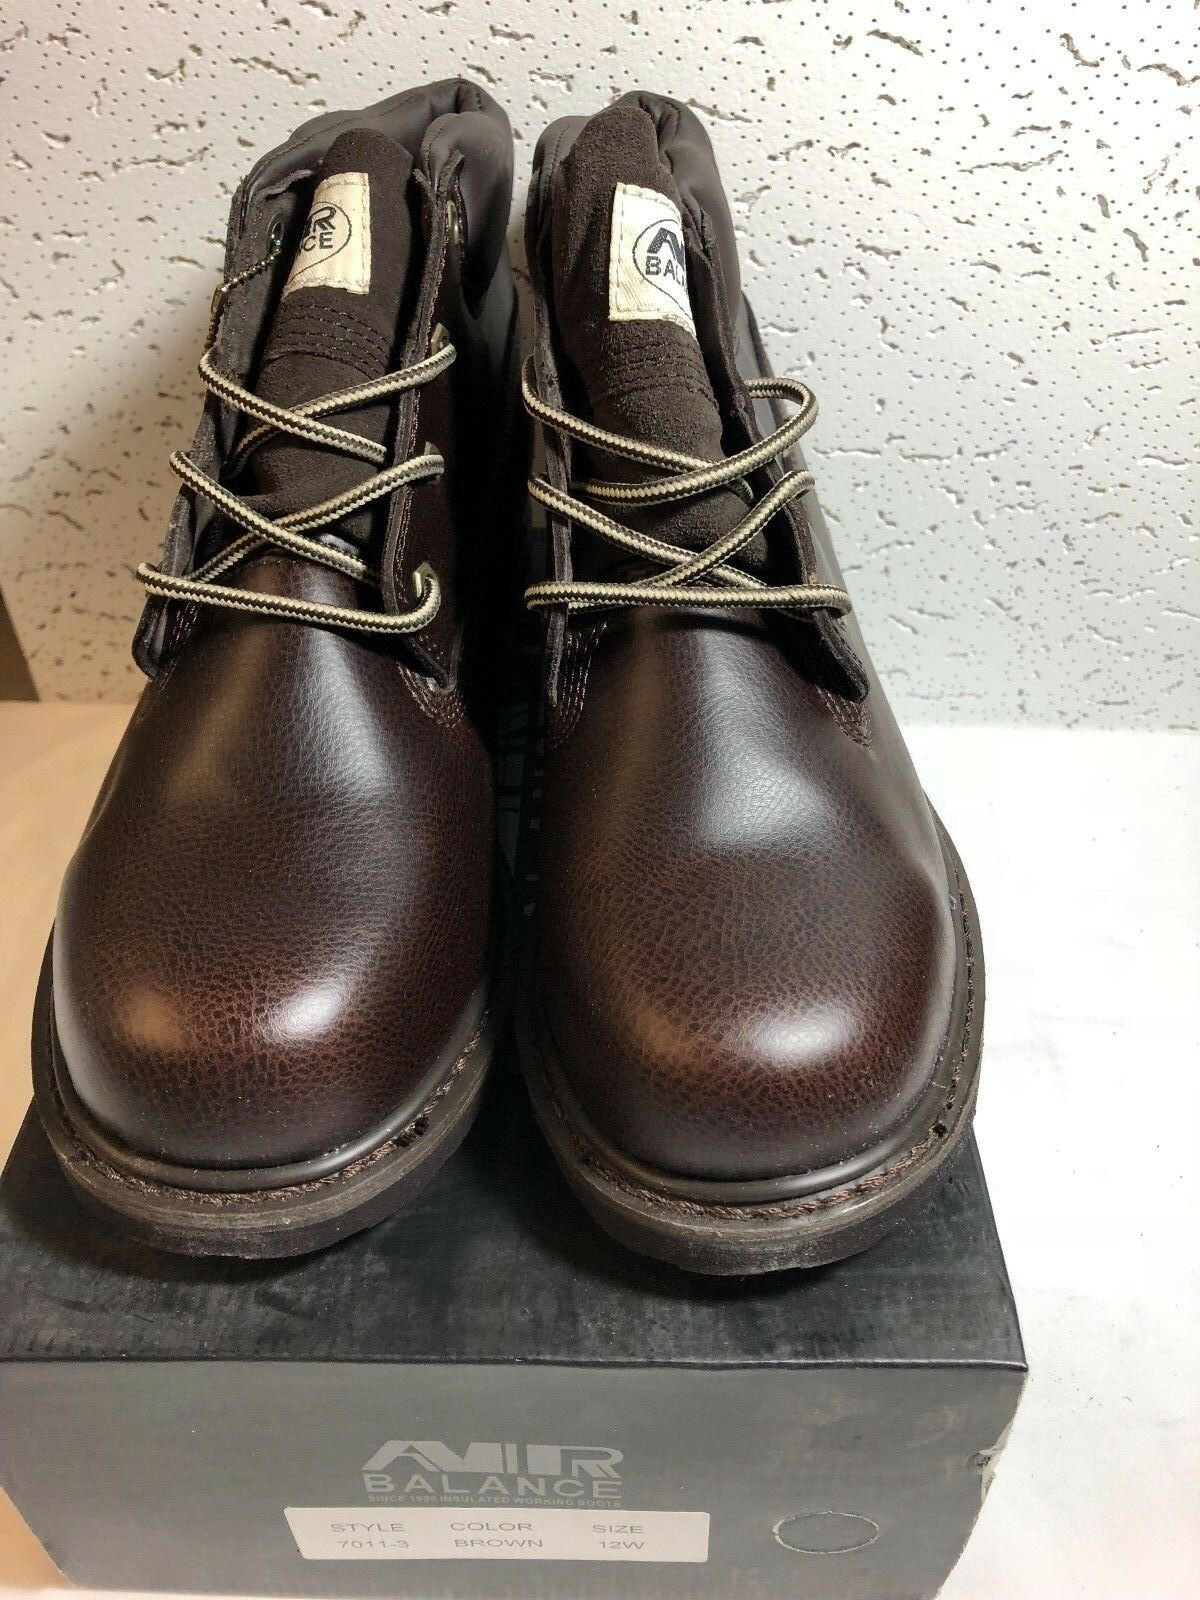 AIR BALANCE MEN INSULATED 4  GENUINE LEATHER CONSTRUCTION BOOTS SIZE 12W BROWN